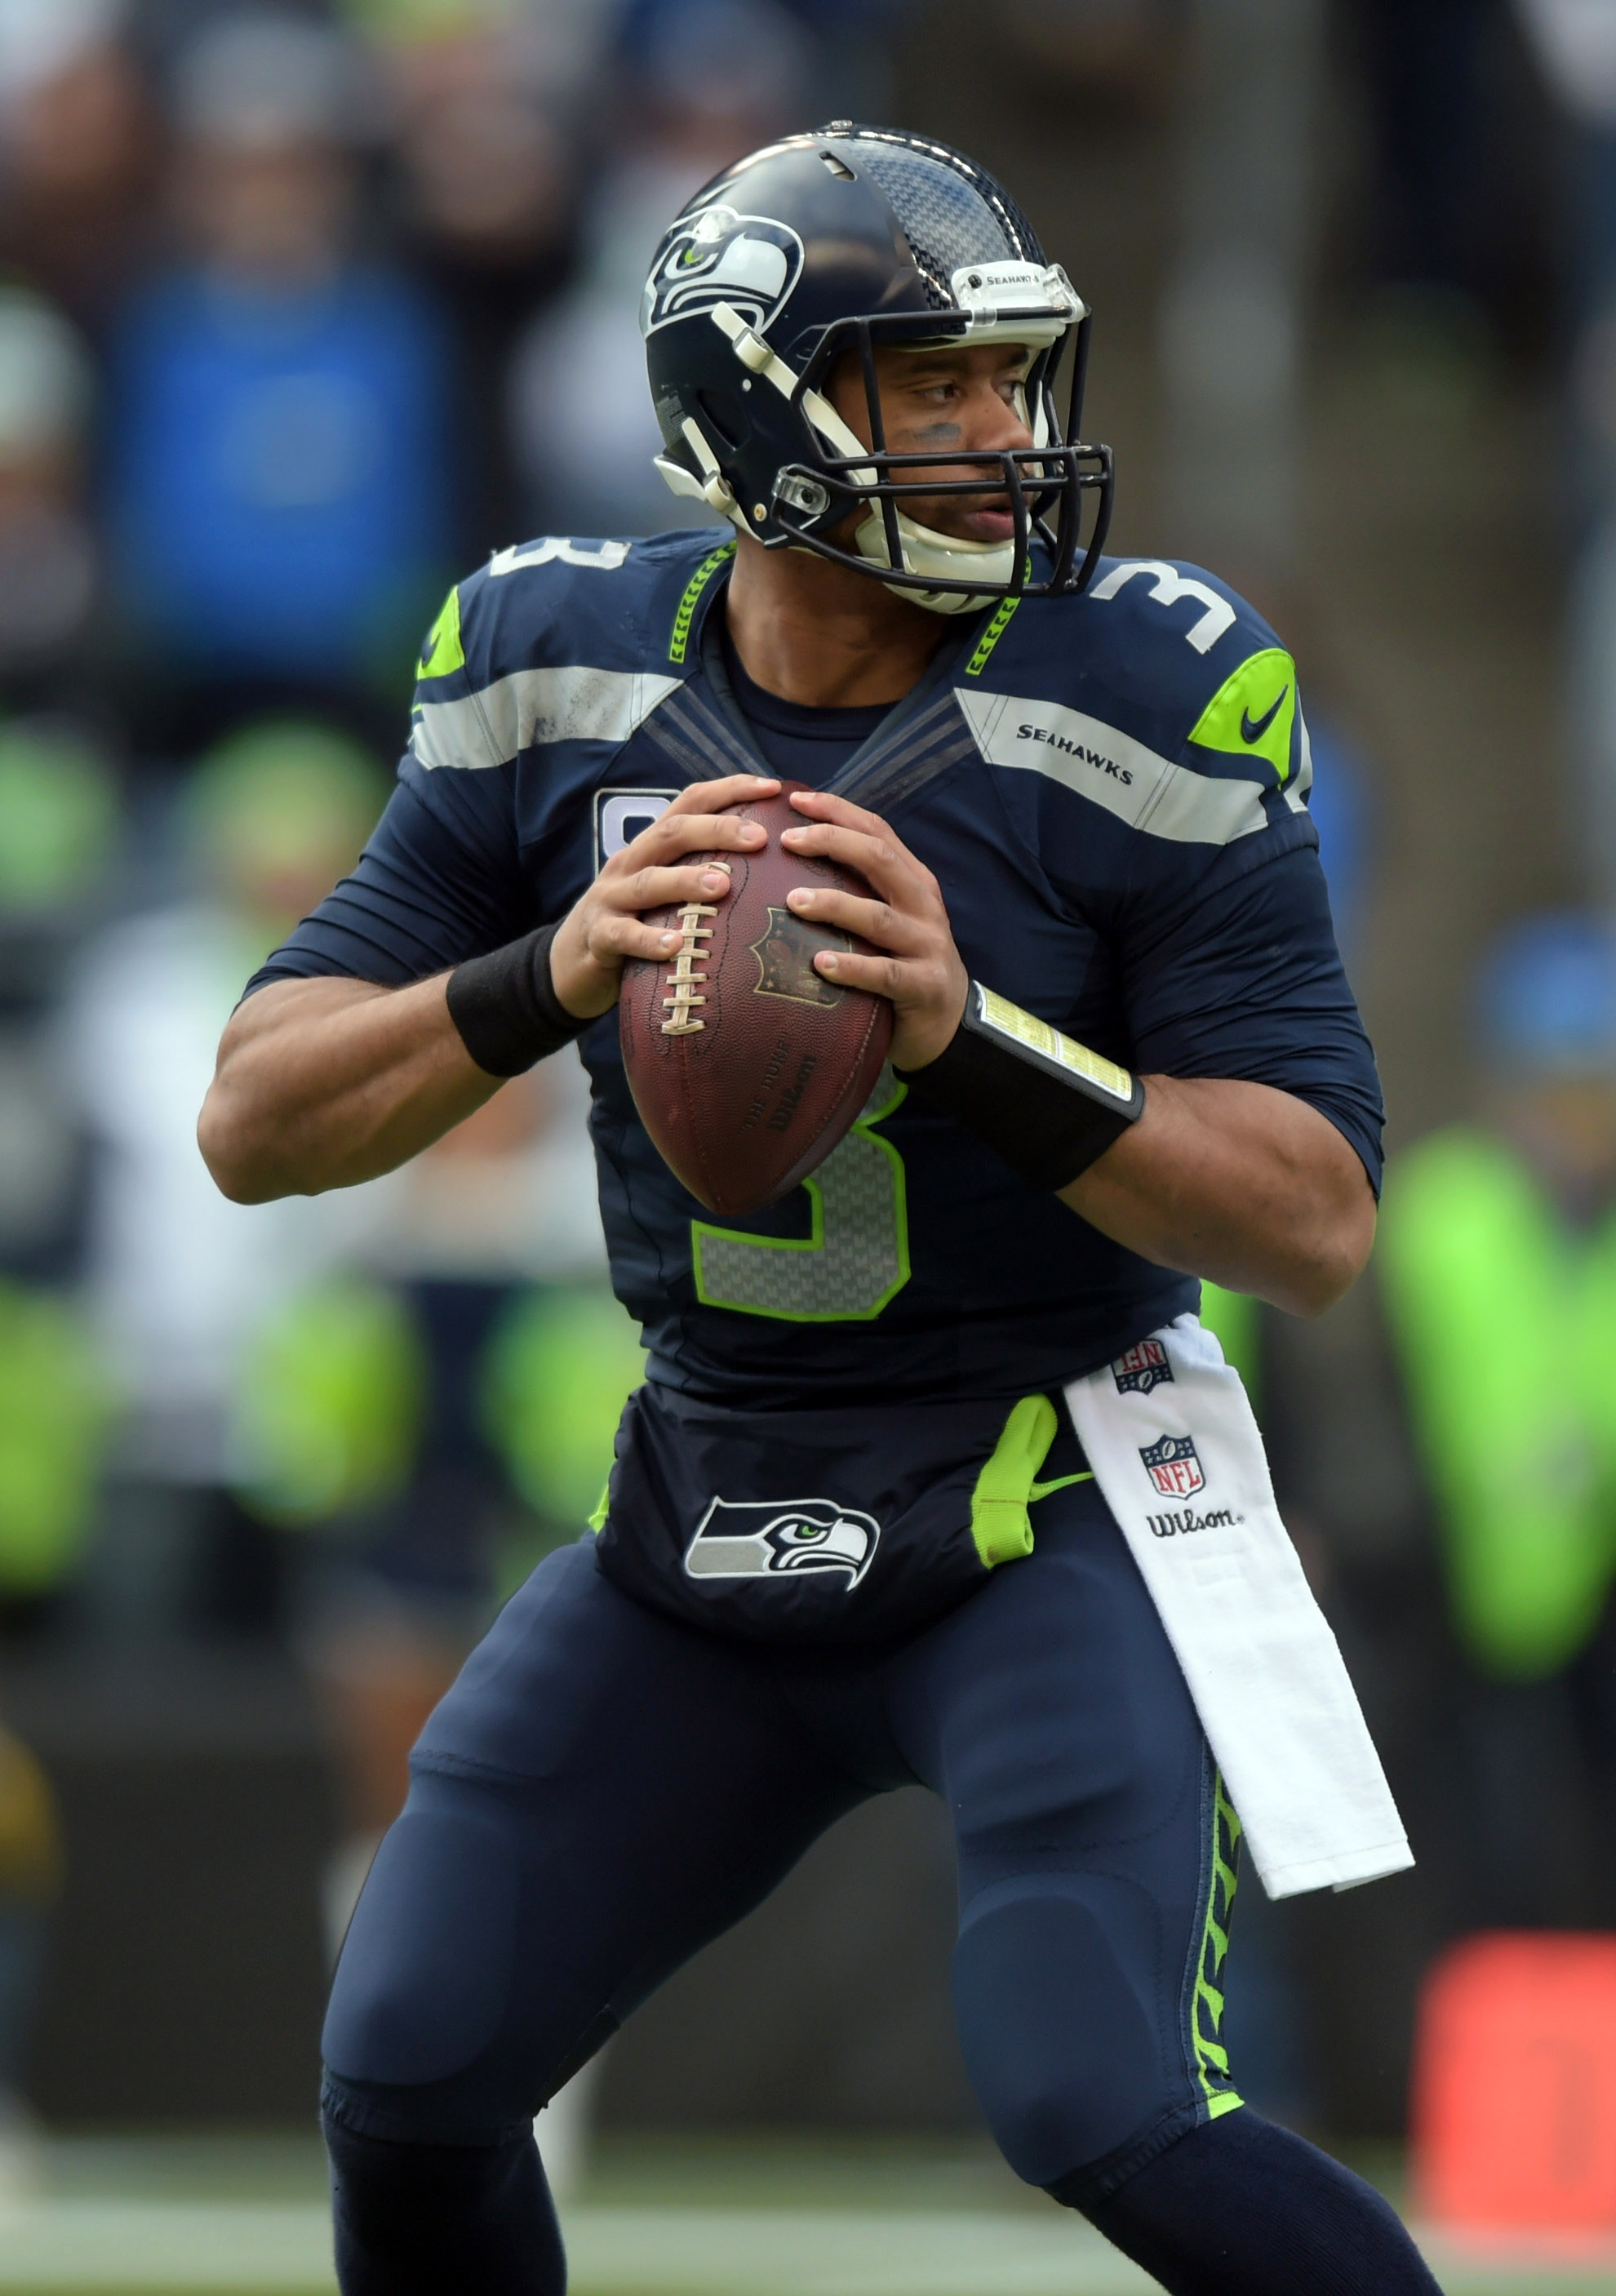 Details on russell wilson 39 s new deal with seahawks - Seahawks wallpaper russell wilson ...